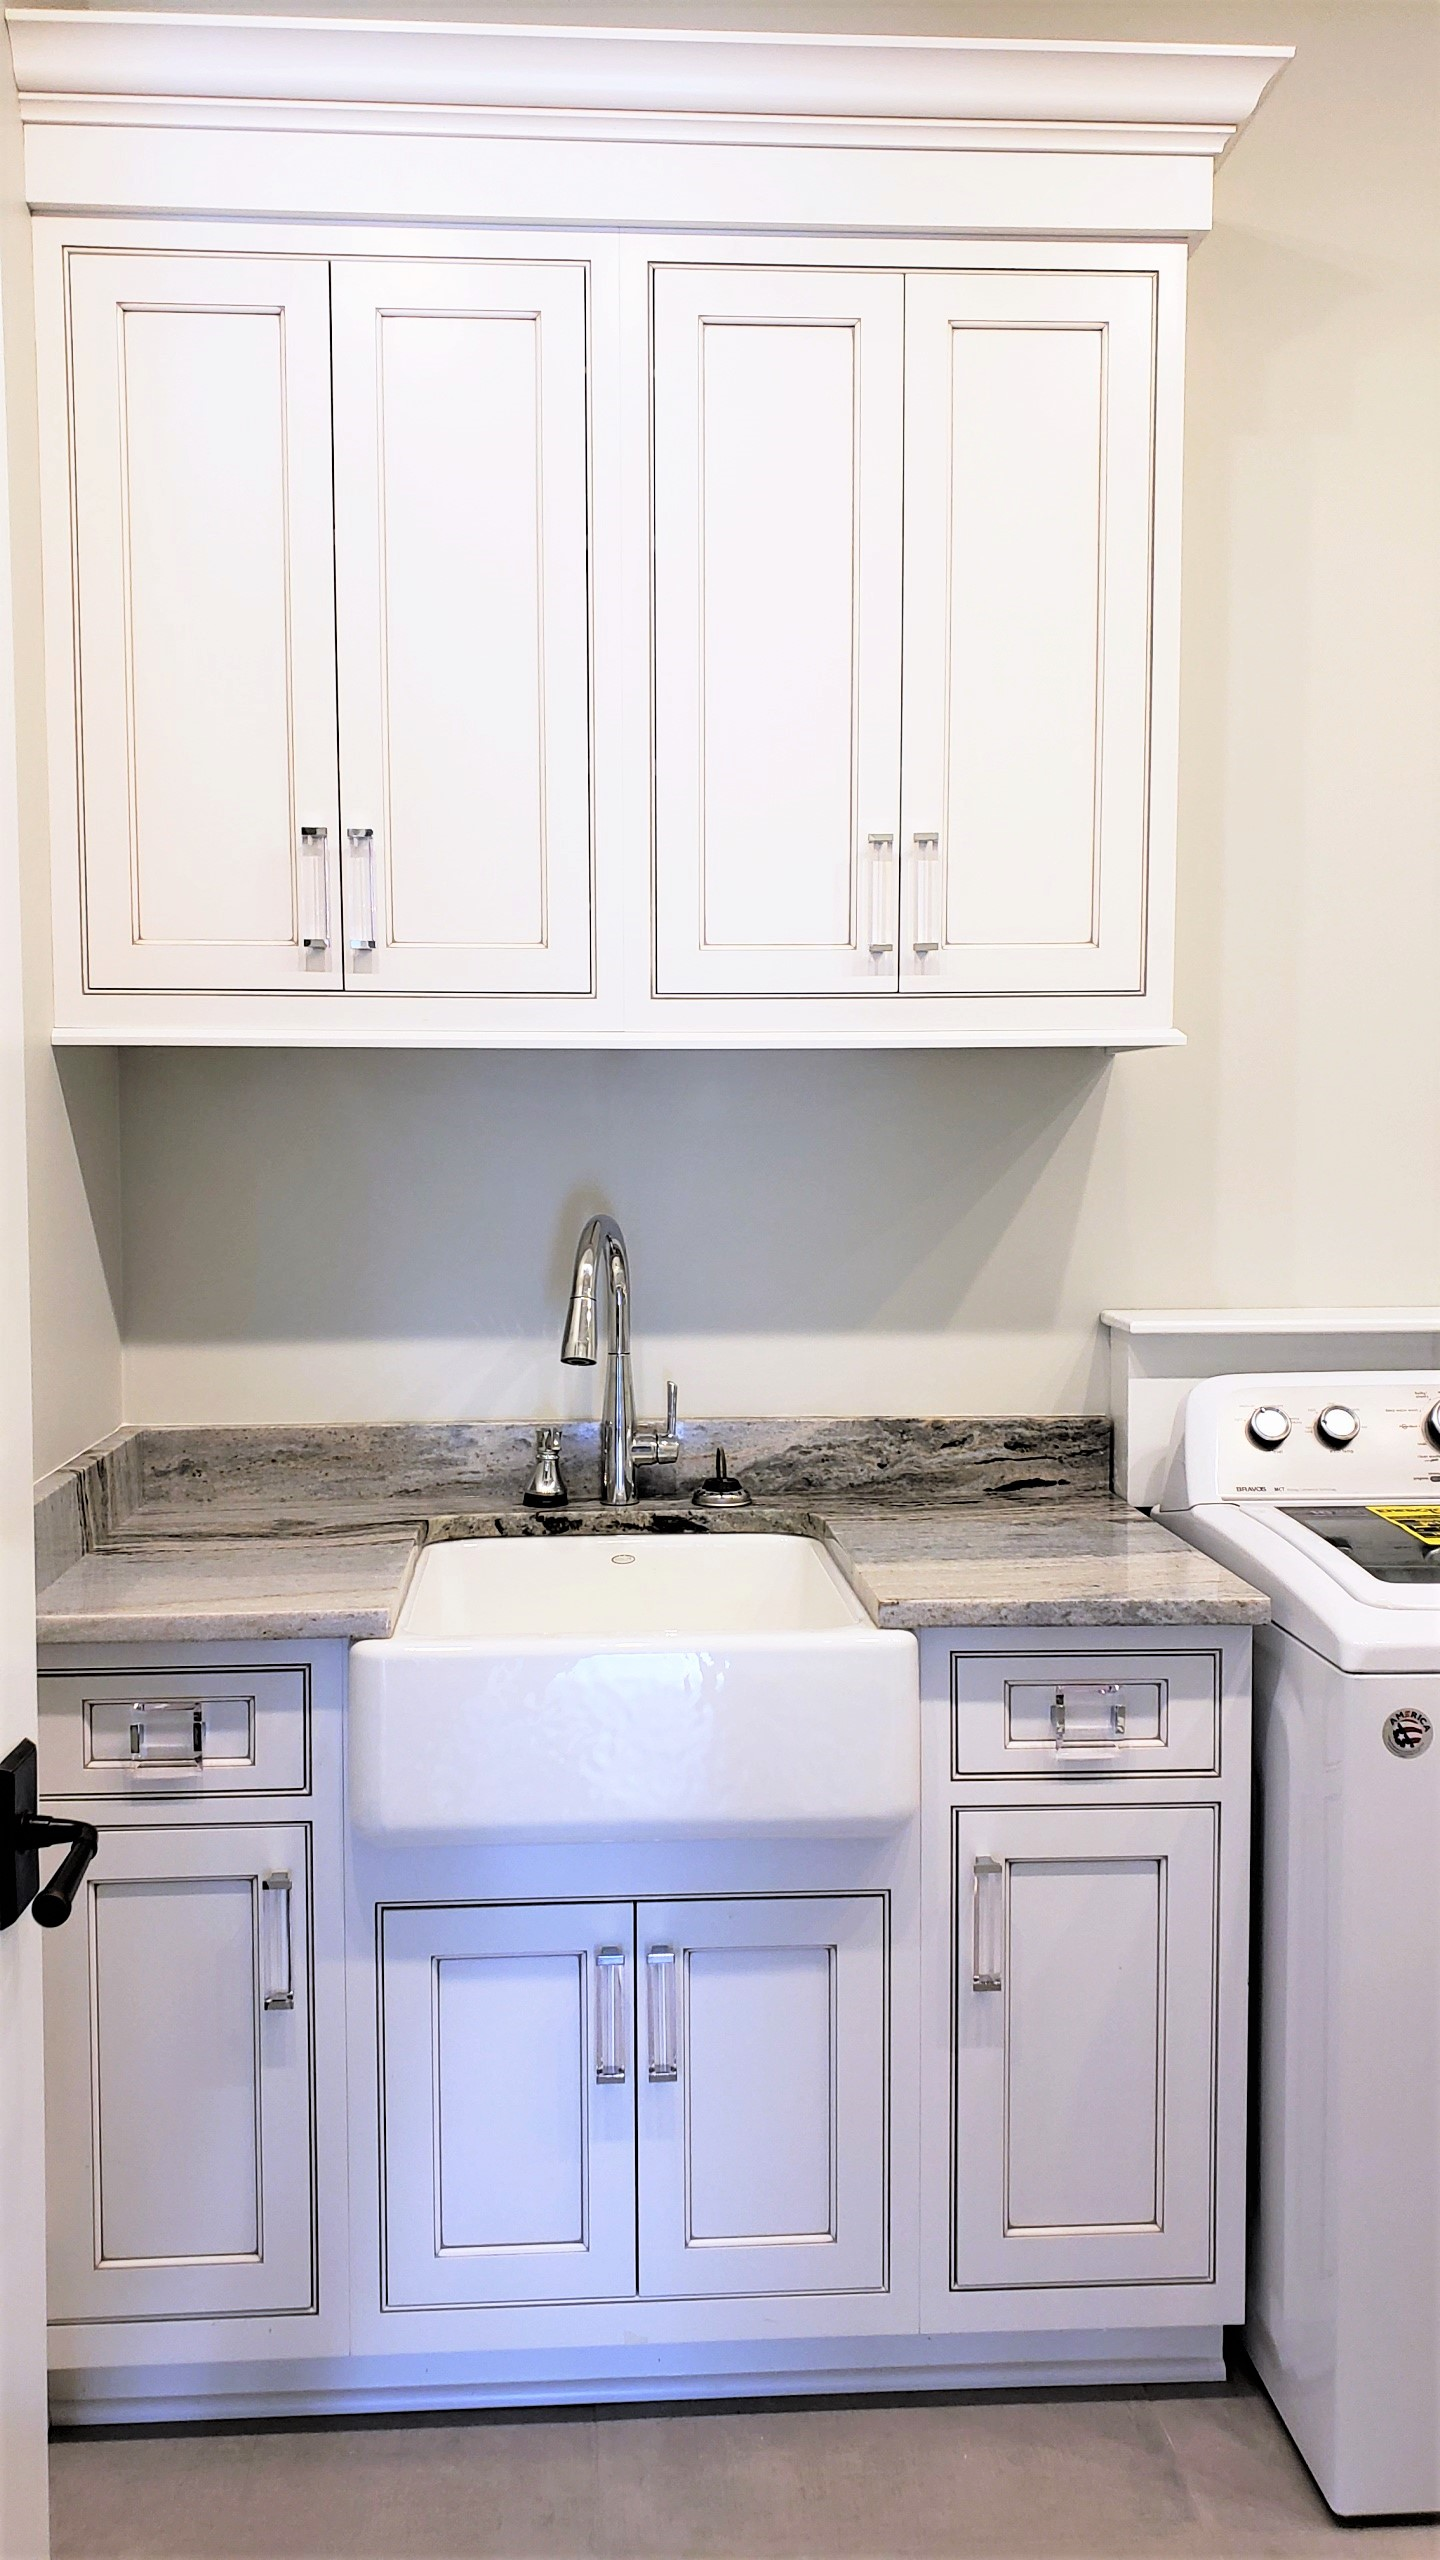 LUXE Homes Pro 027 laundry sink.jpg